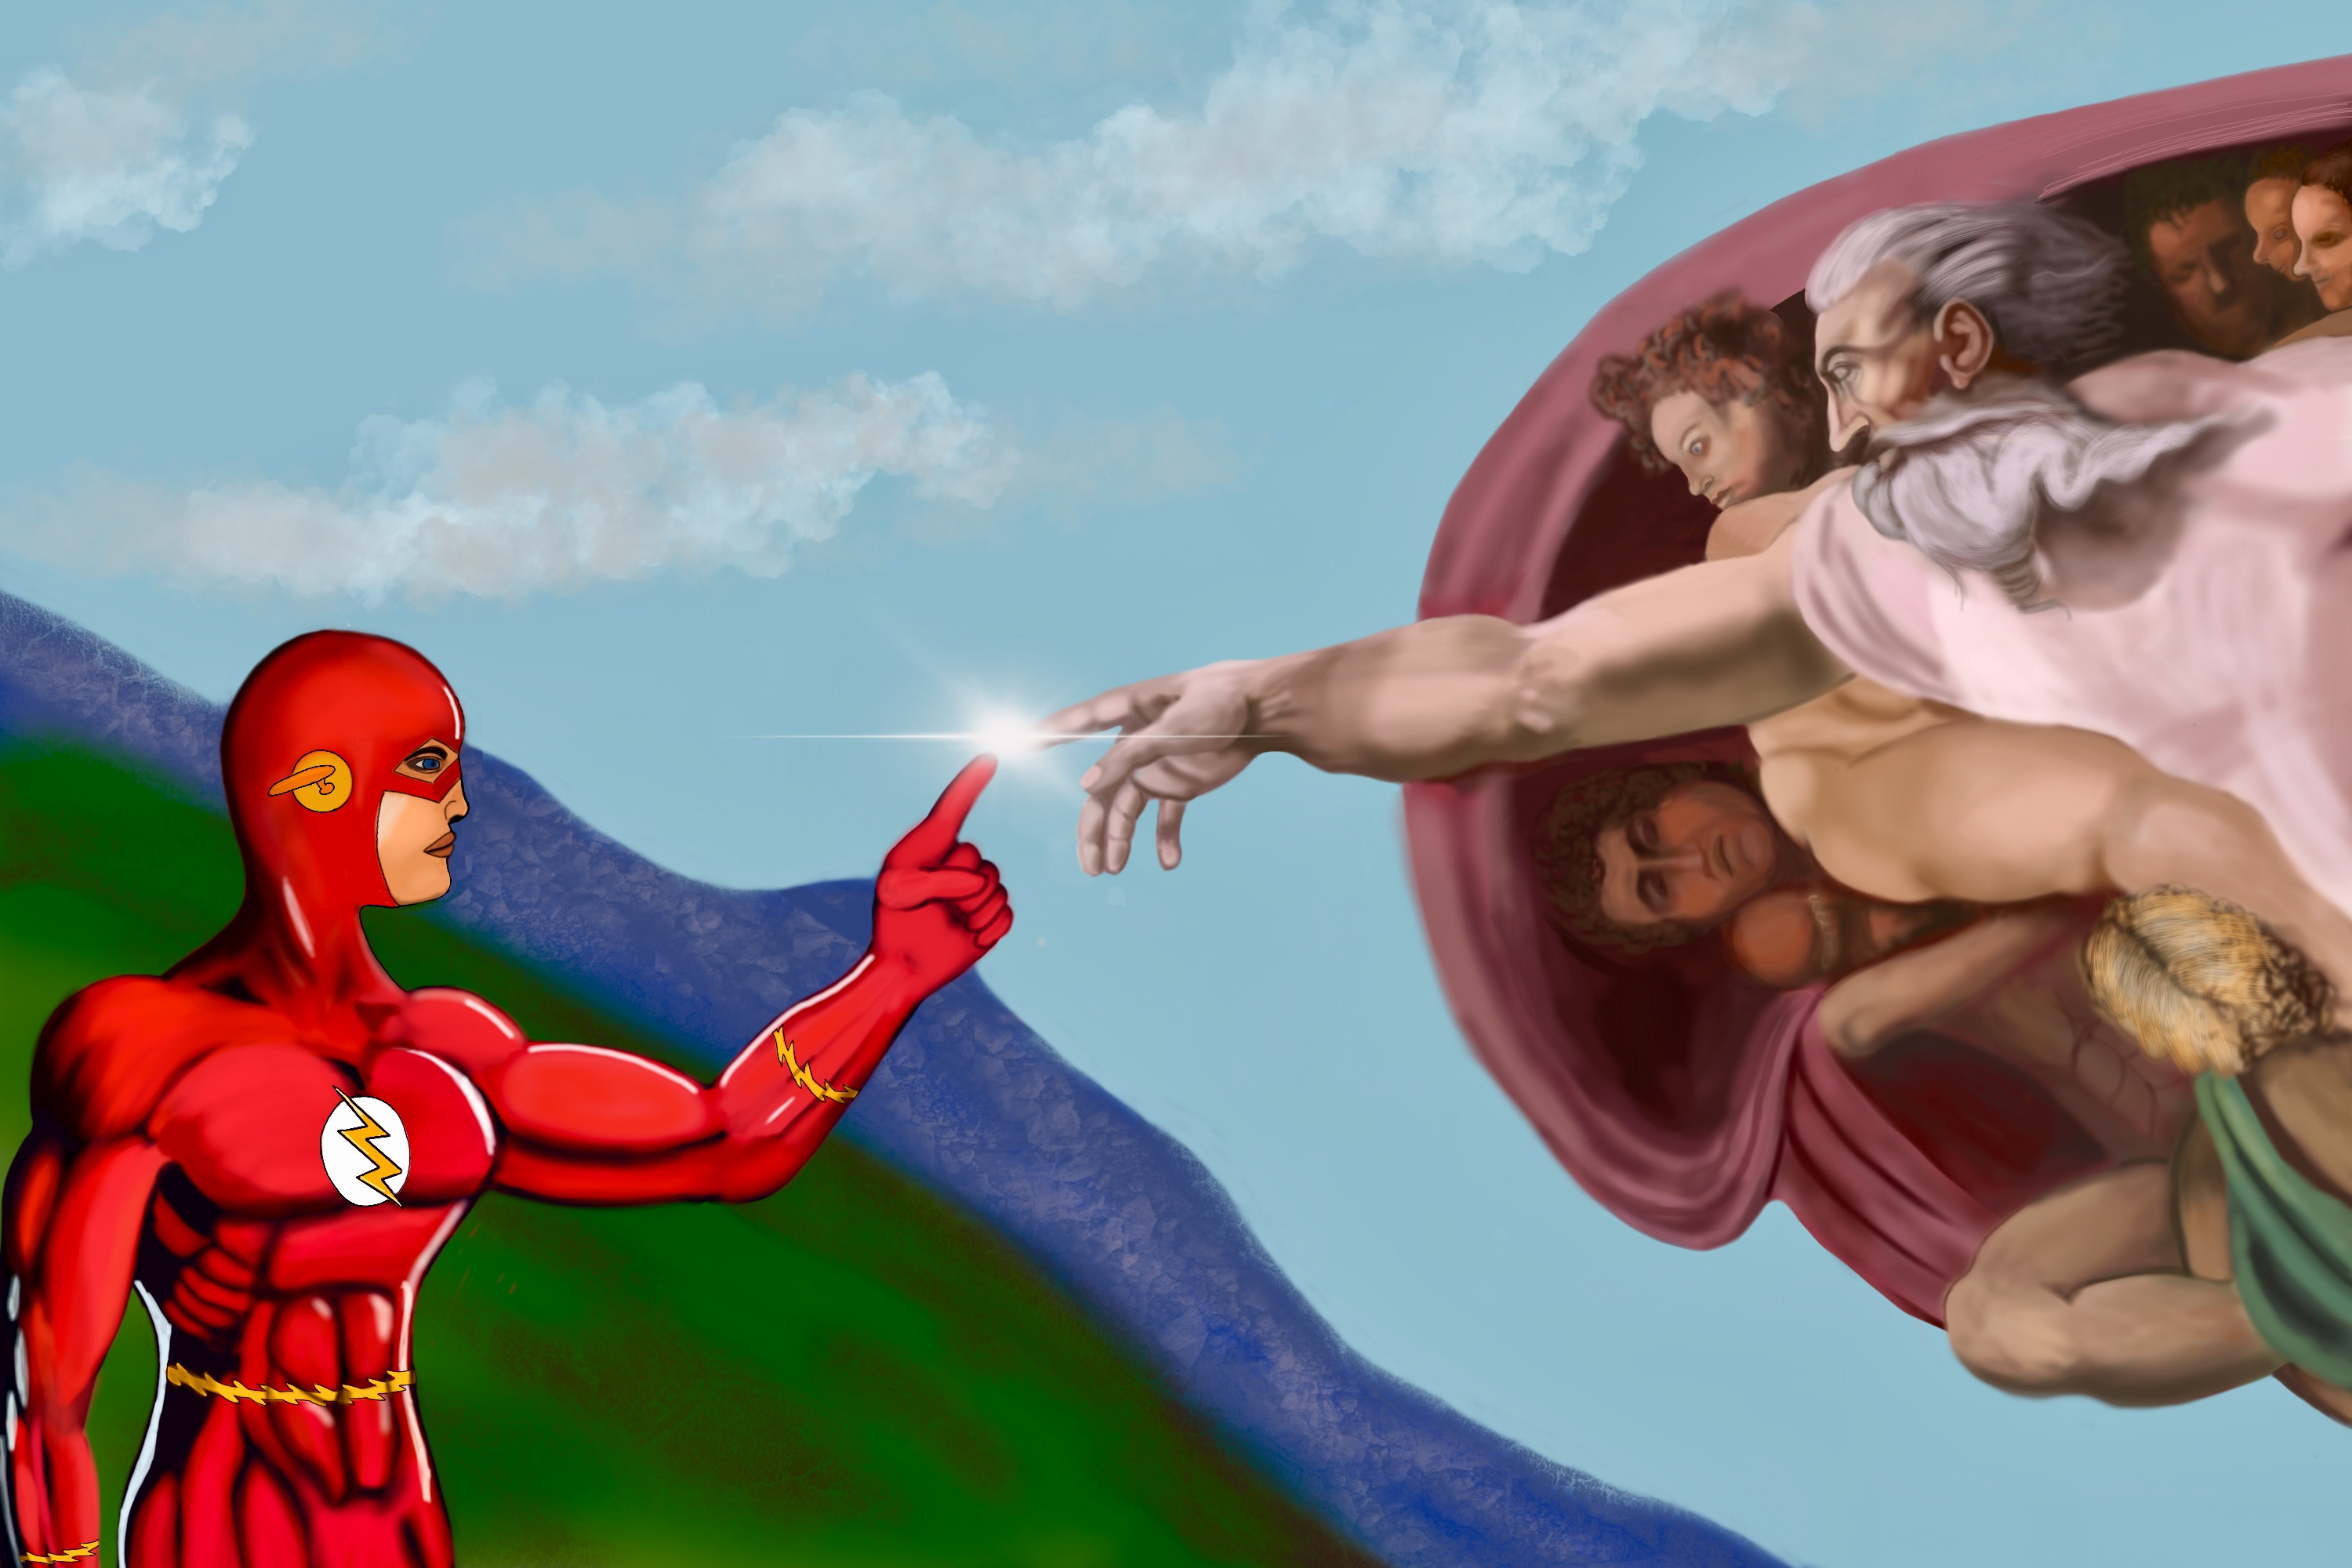 The creation of the Flash